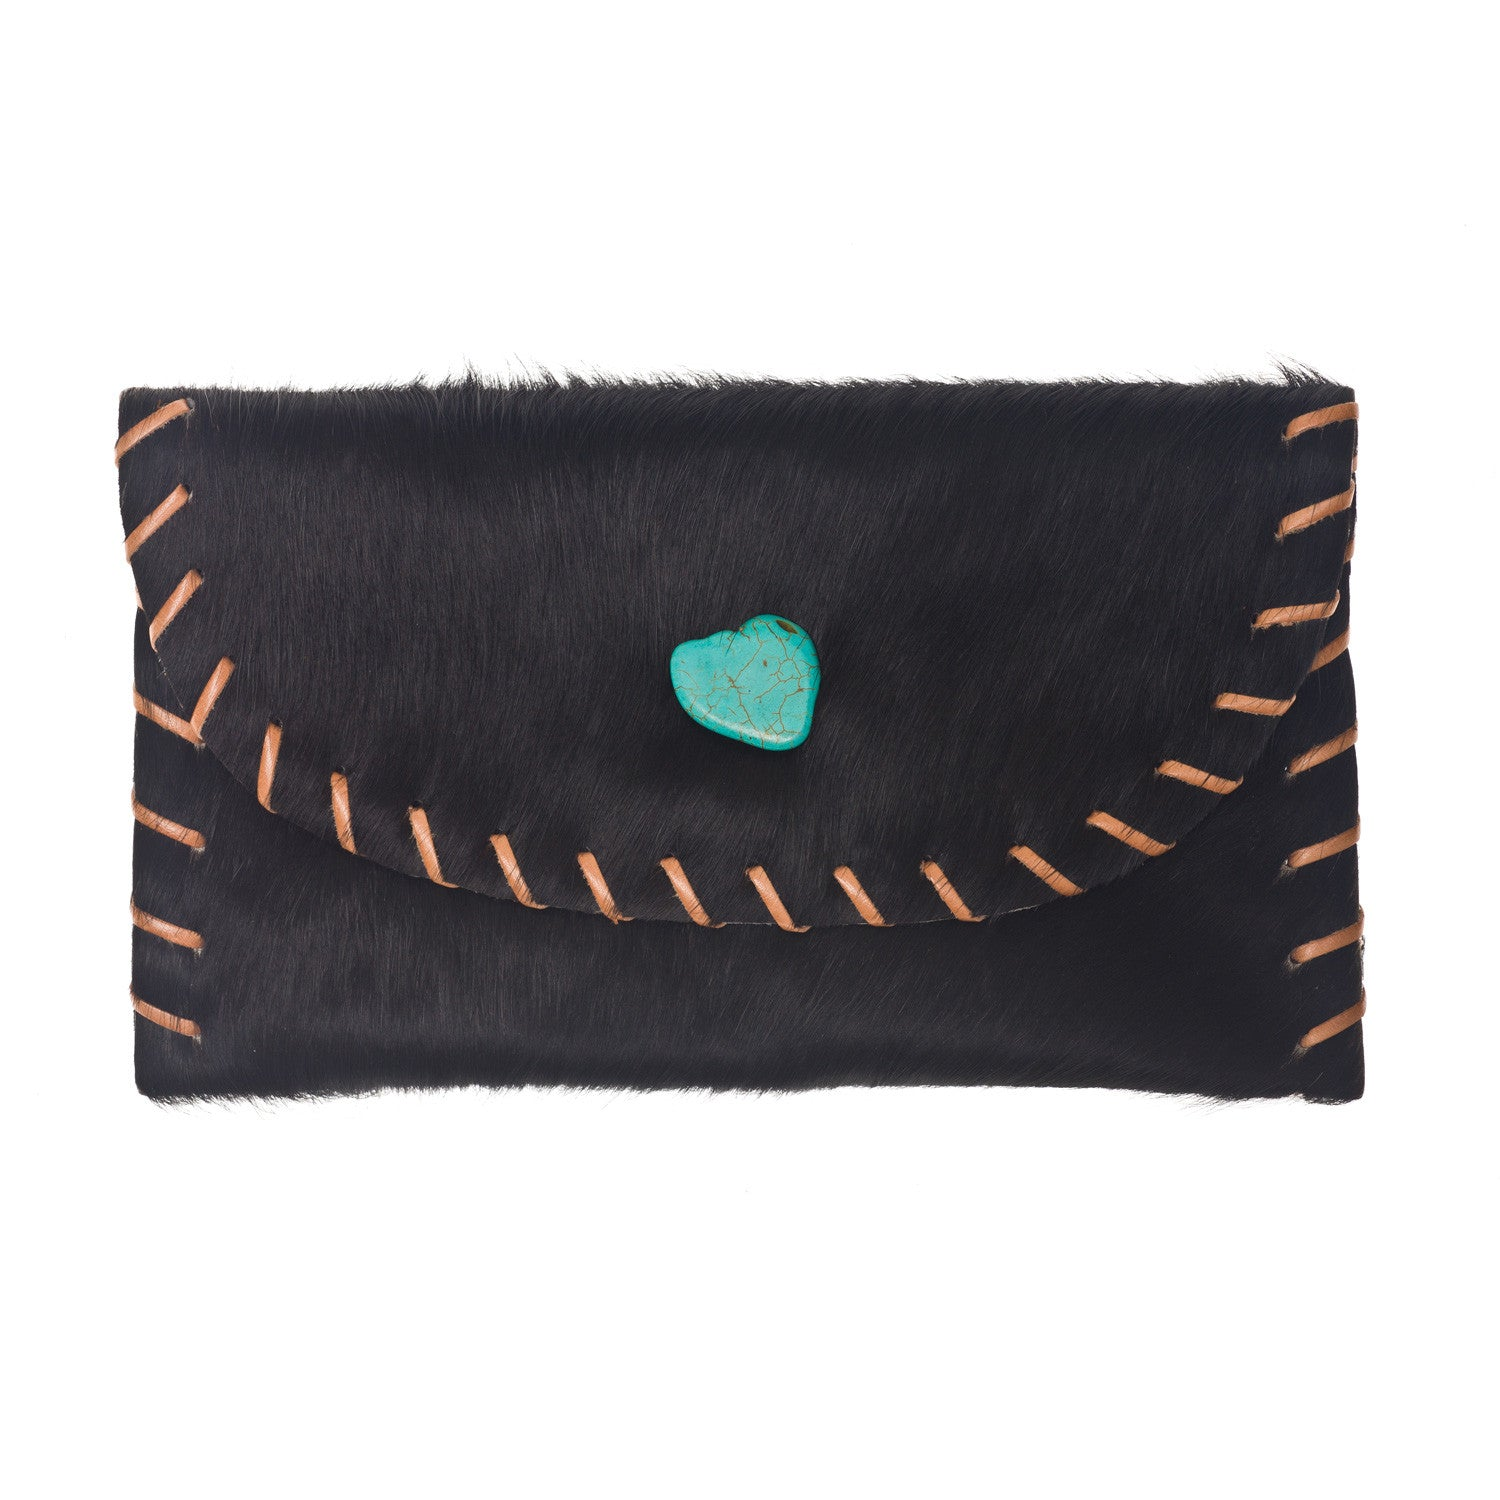 The Virgina Clutch - Black Hair on Hide Leather